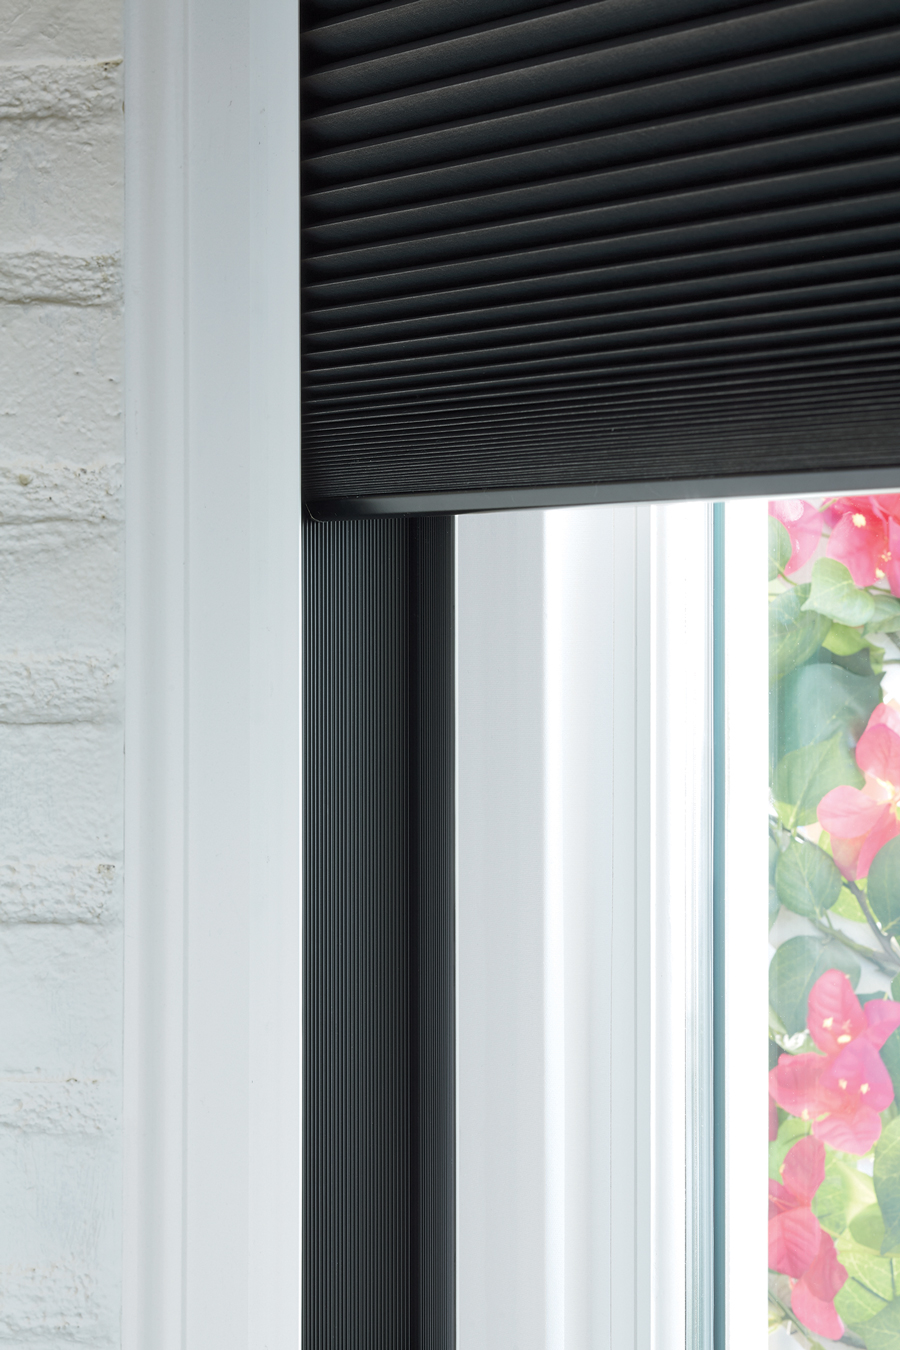 LightLock is one of the window covering innovations this year.